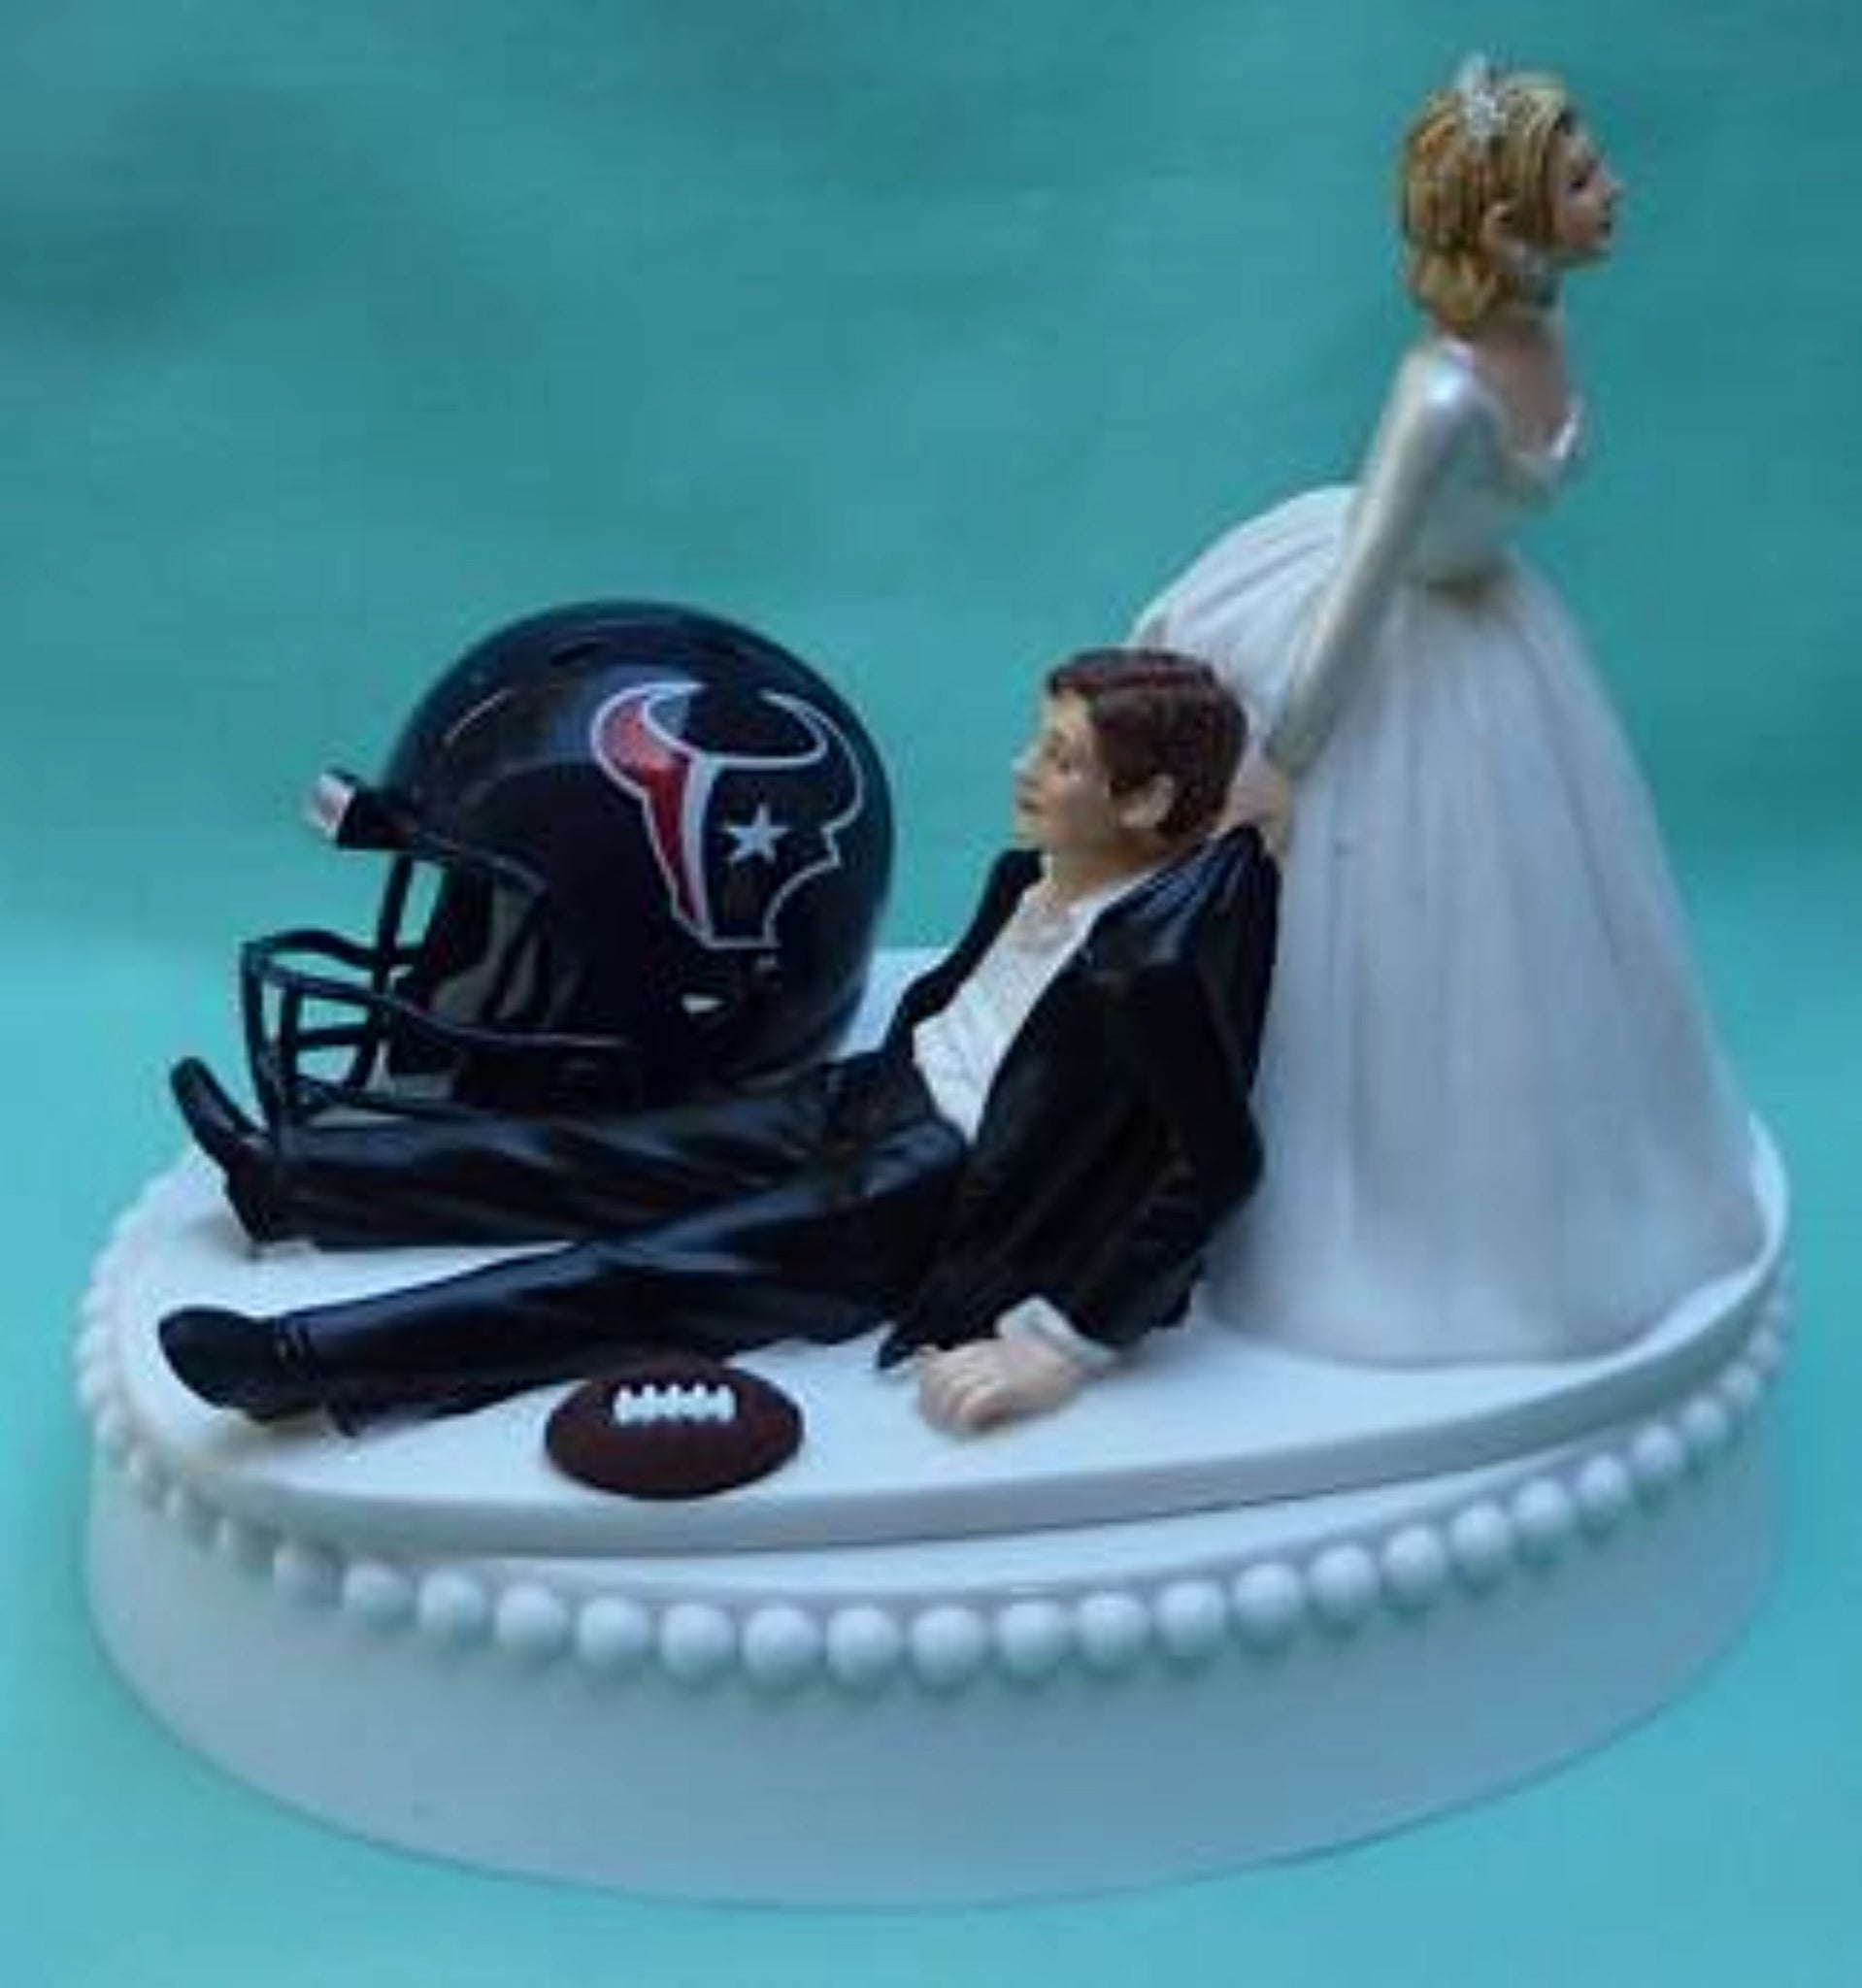 Houston Texans wedding cake topper funny humorous NFL football groom's cake top bride reception